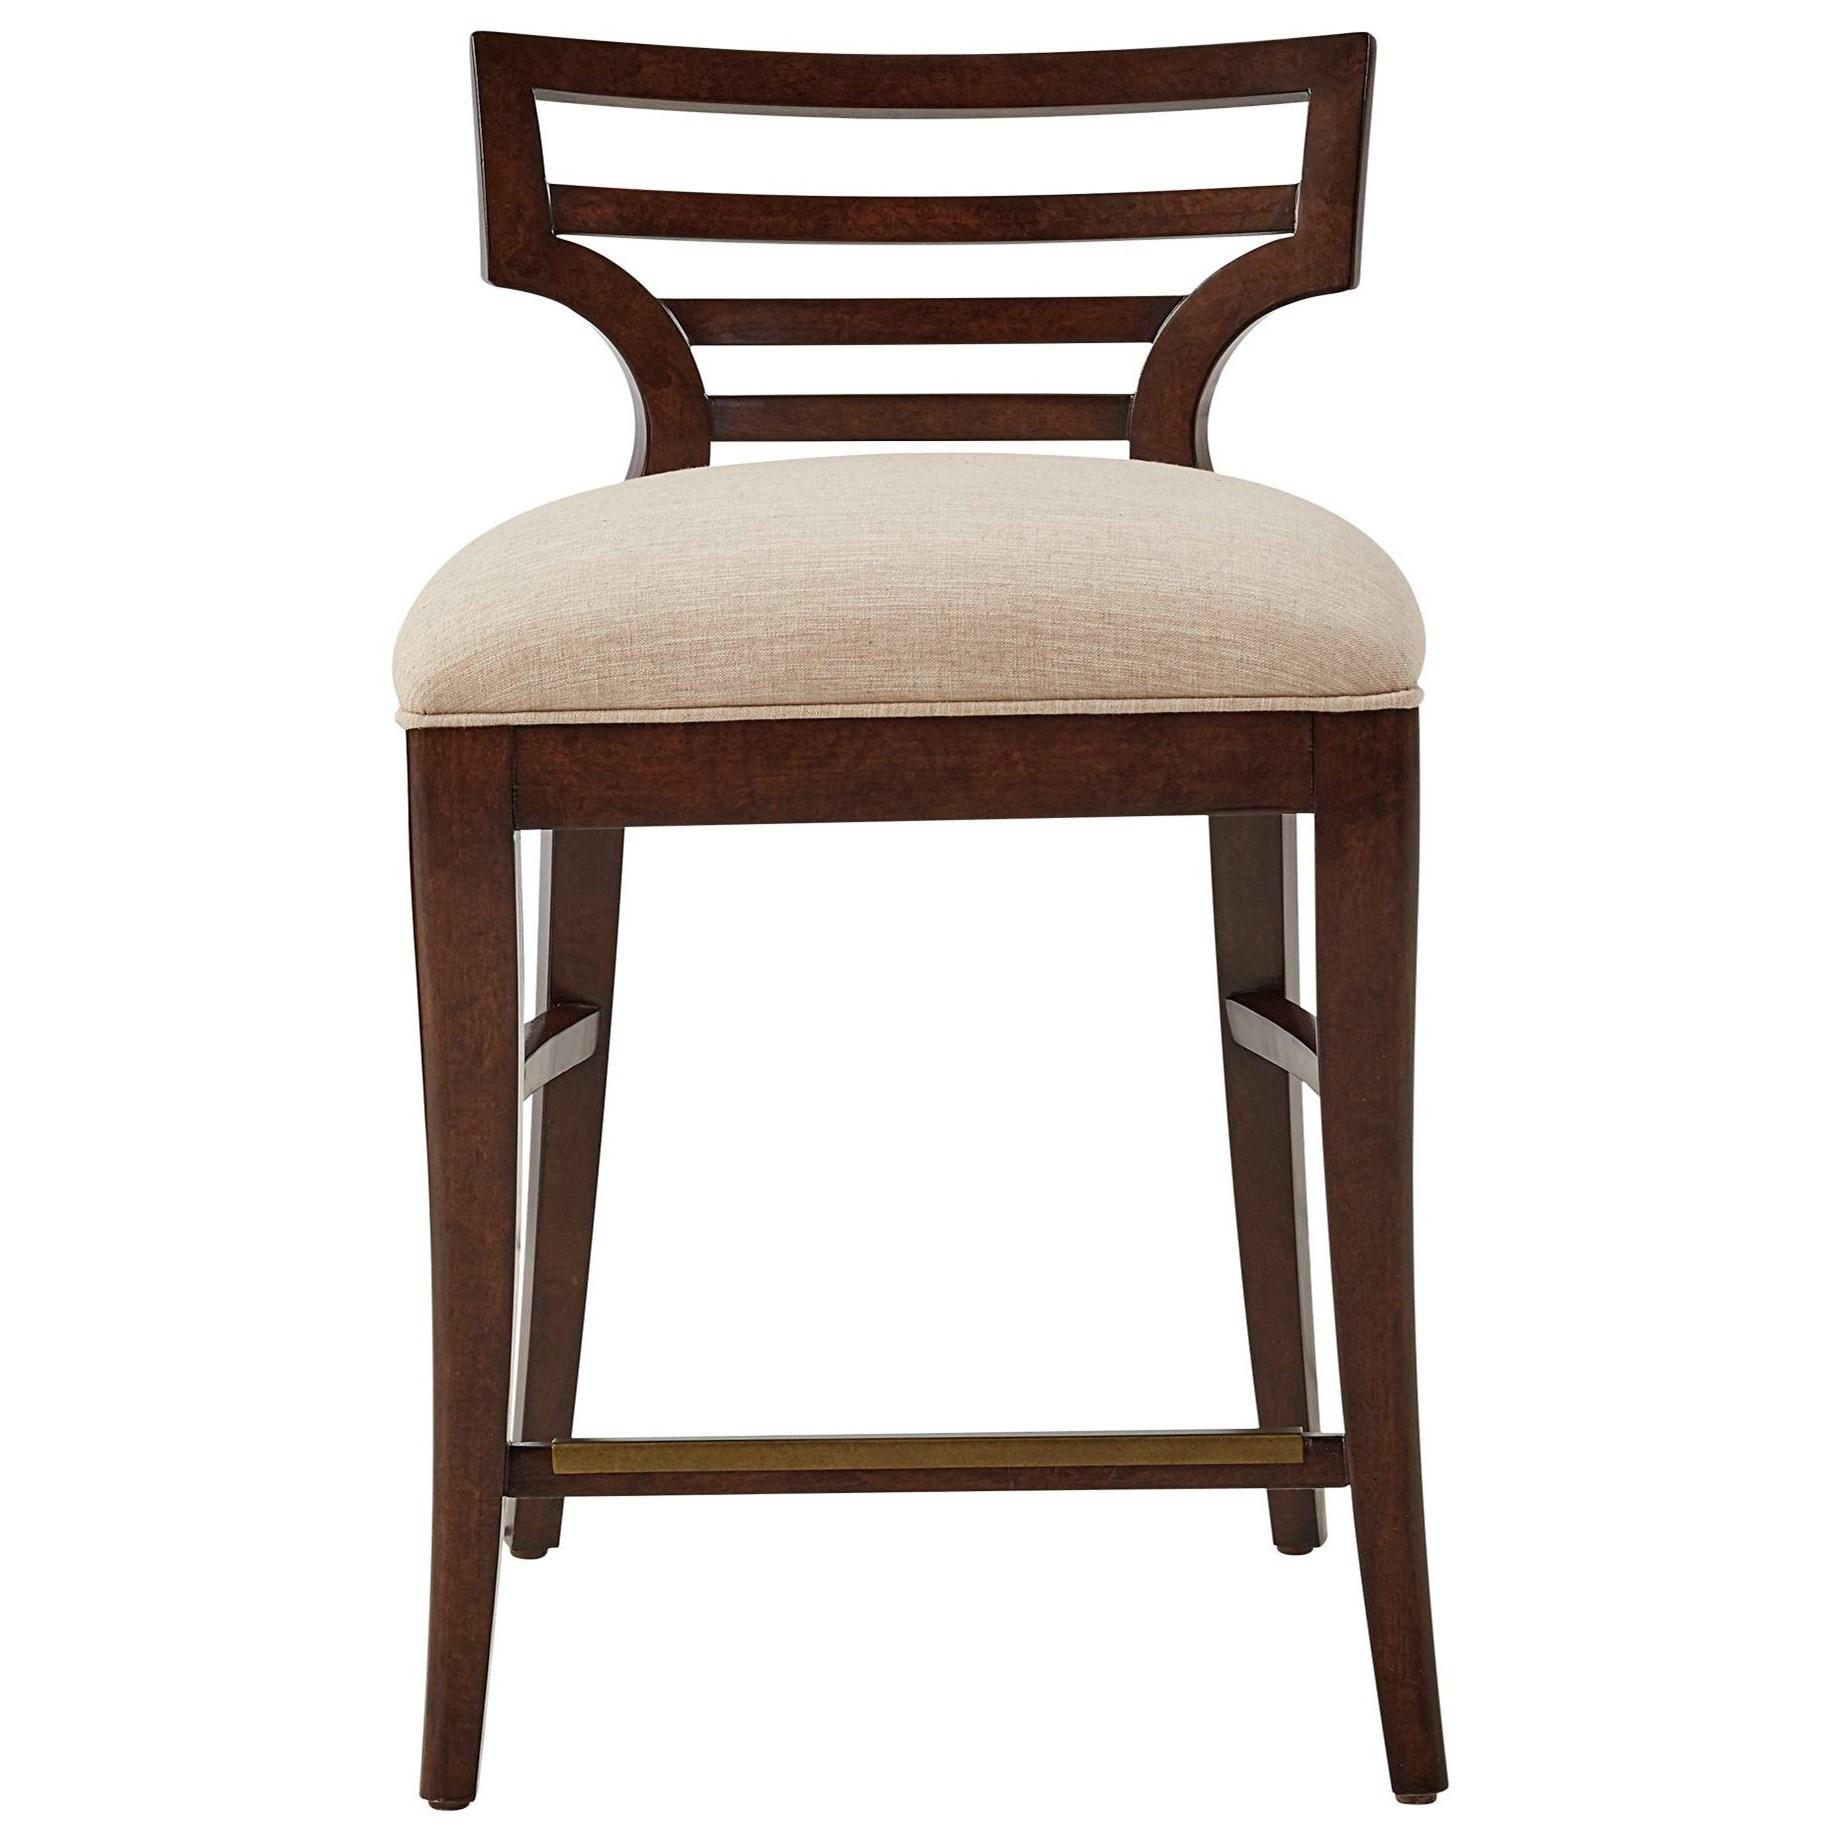 Stanley Furniture Virage 696 11 72 Counter Stool With